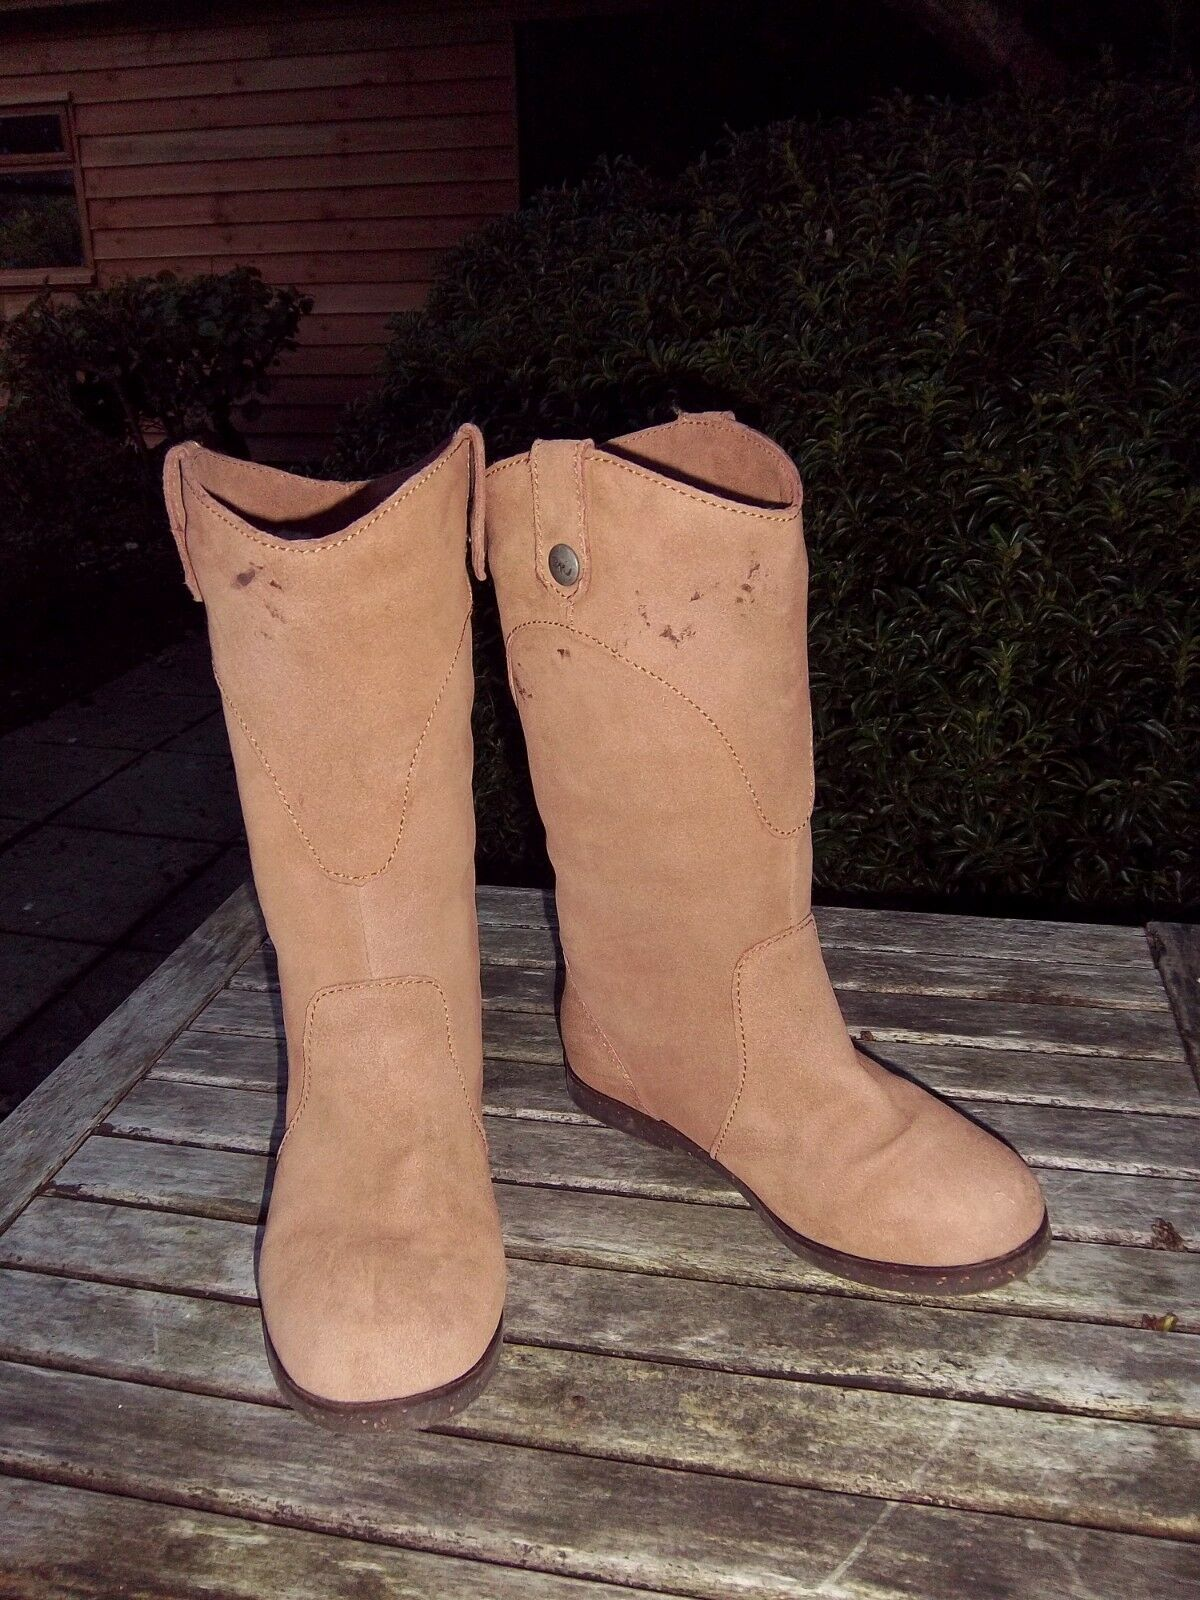 EMU Australia tan brown suede mid calf length ladies flat boots size